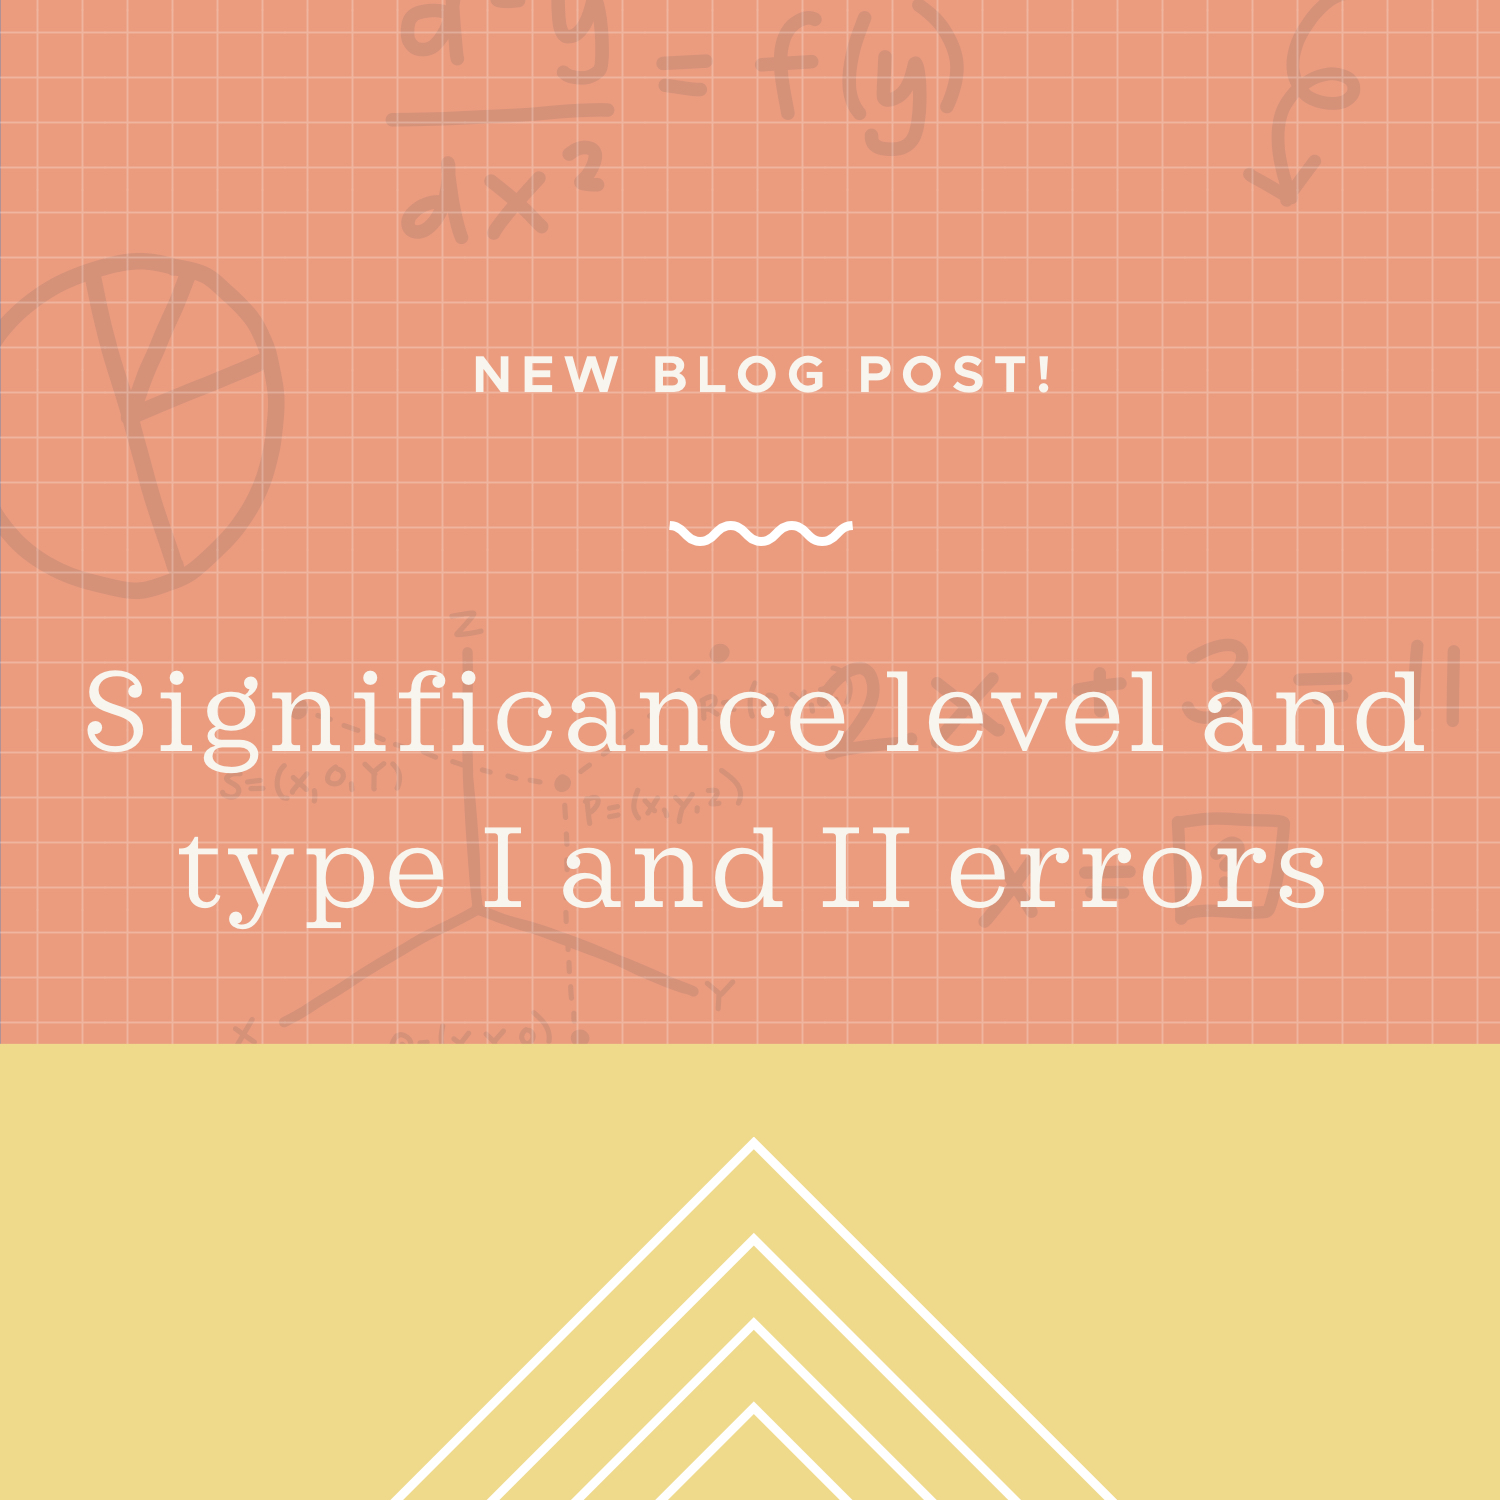 Significance level and type I and II errors blog post.jpeg